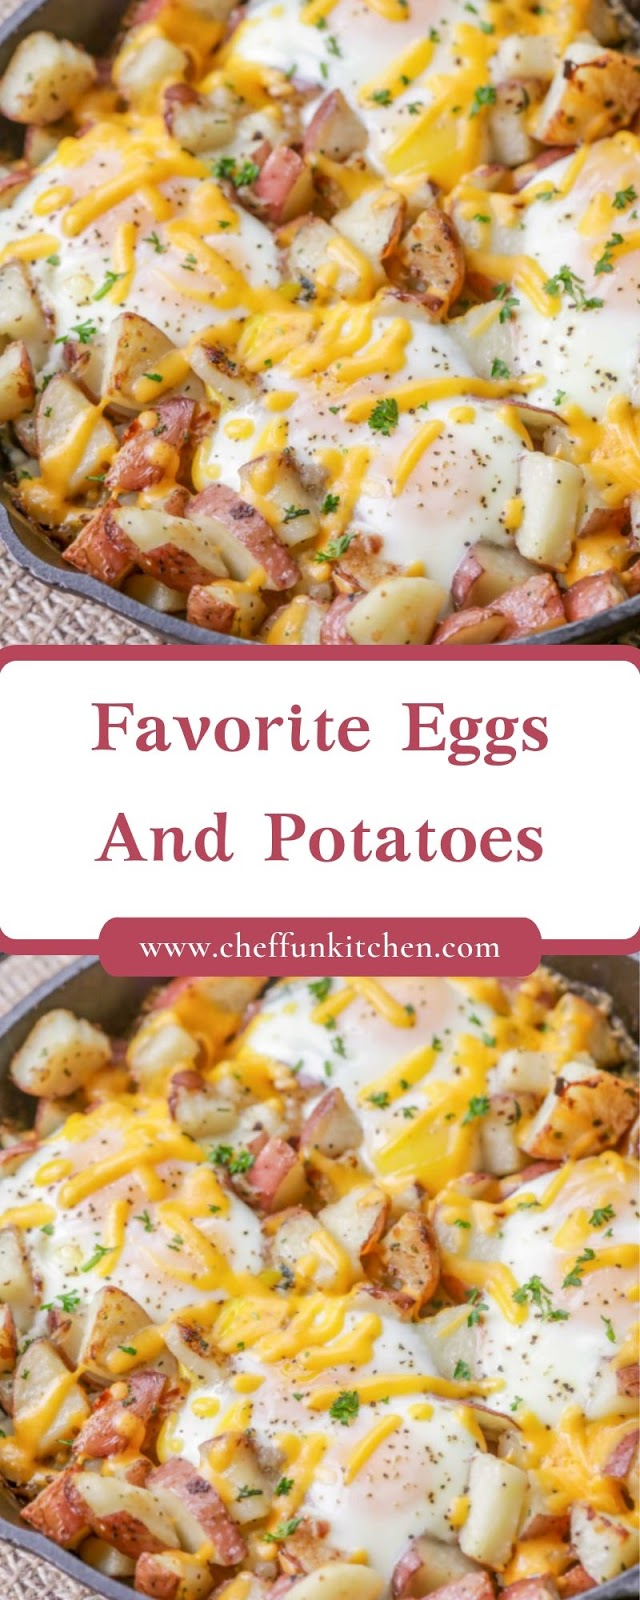 Favorite Eggs And Potatoes